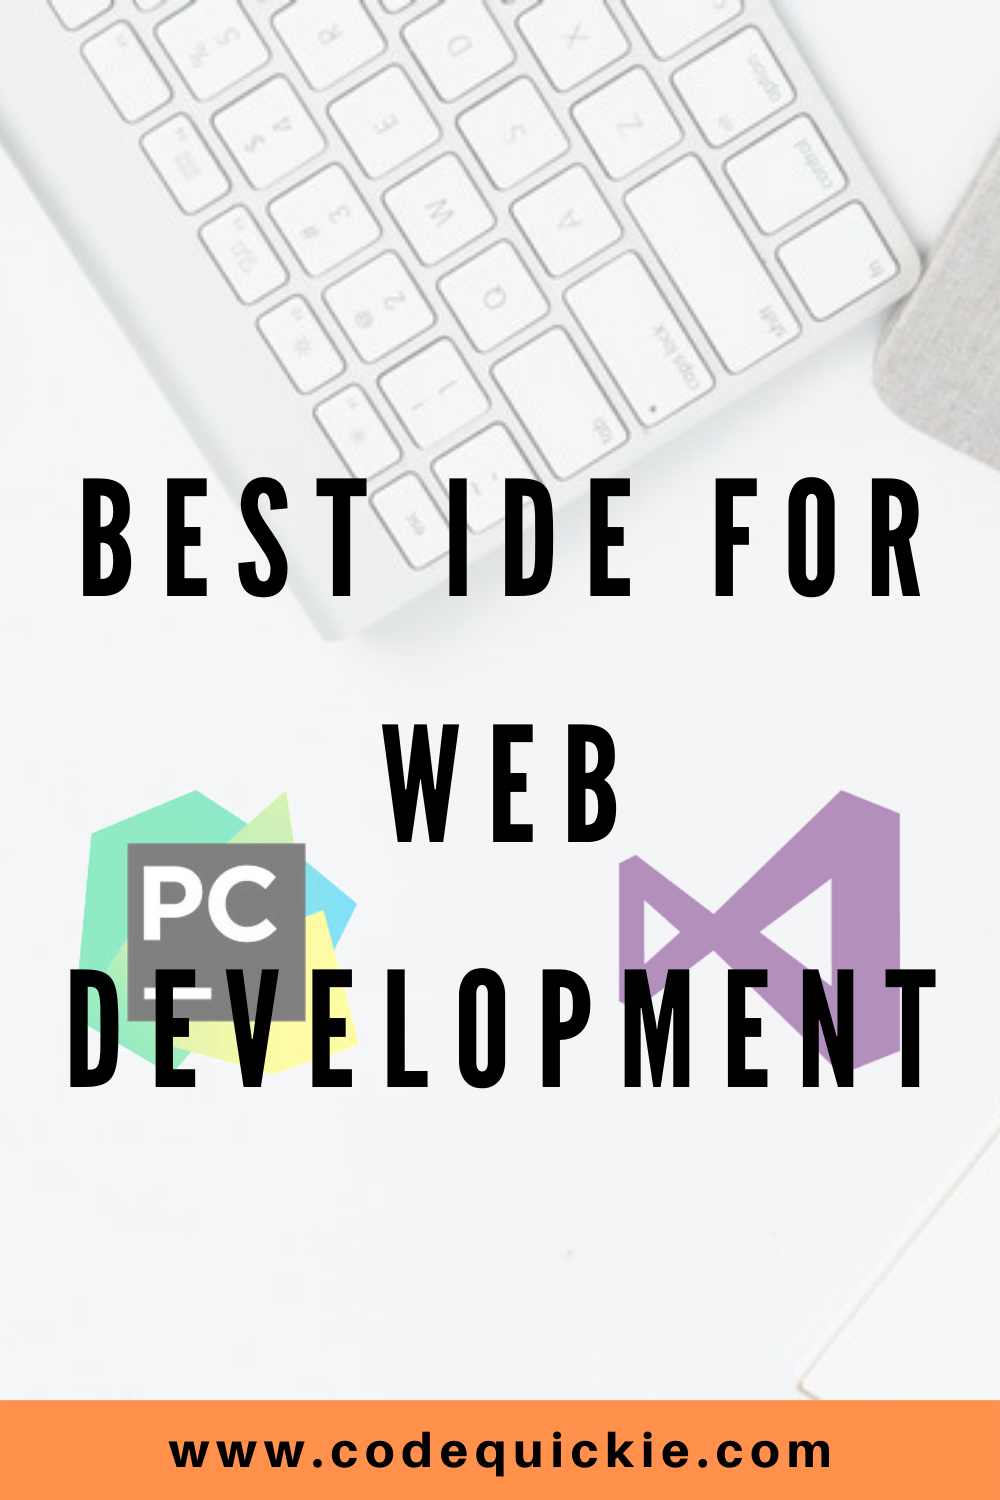 Top 3 Best Ide For Web Development In 2020 With Images Learn Web Development Development Web Development